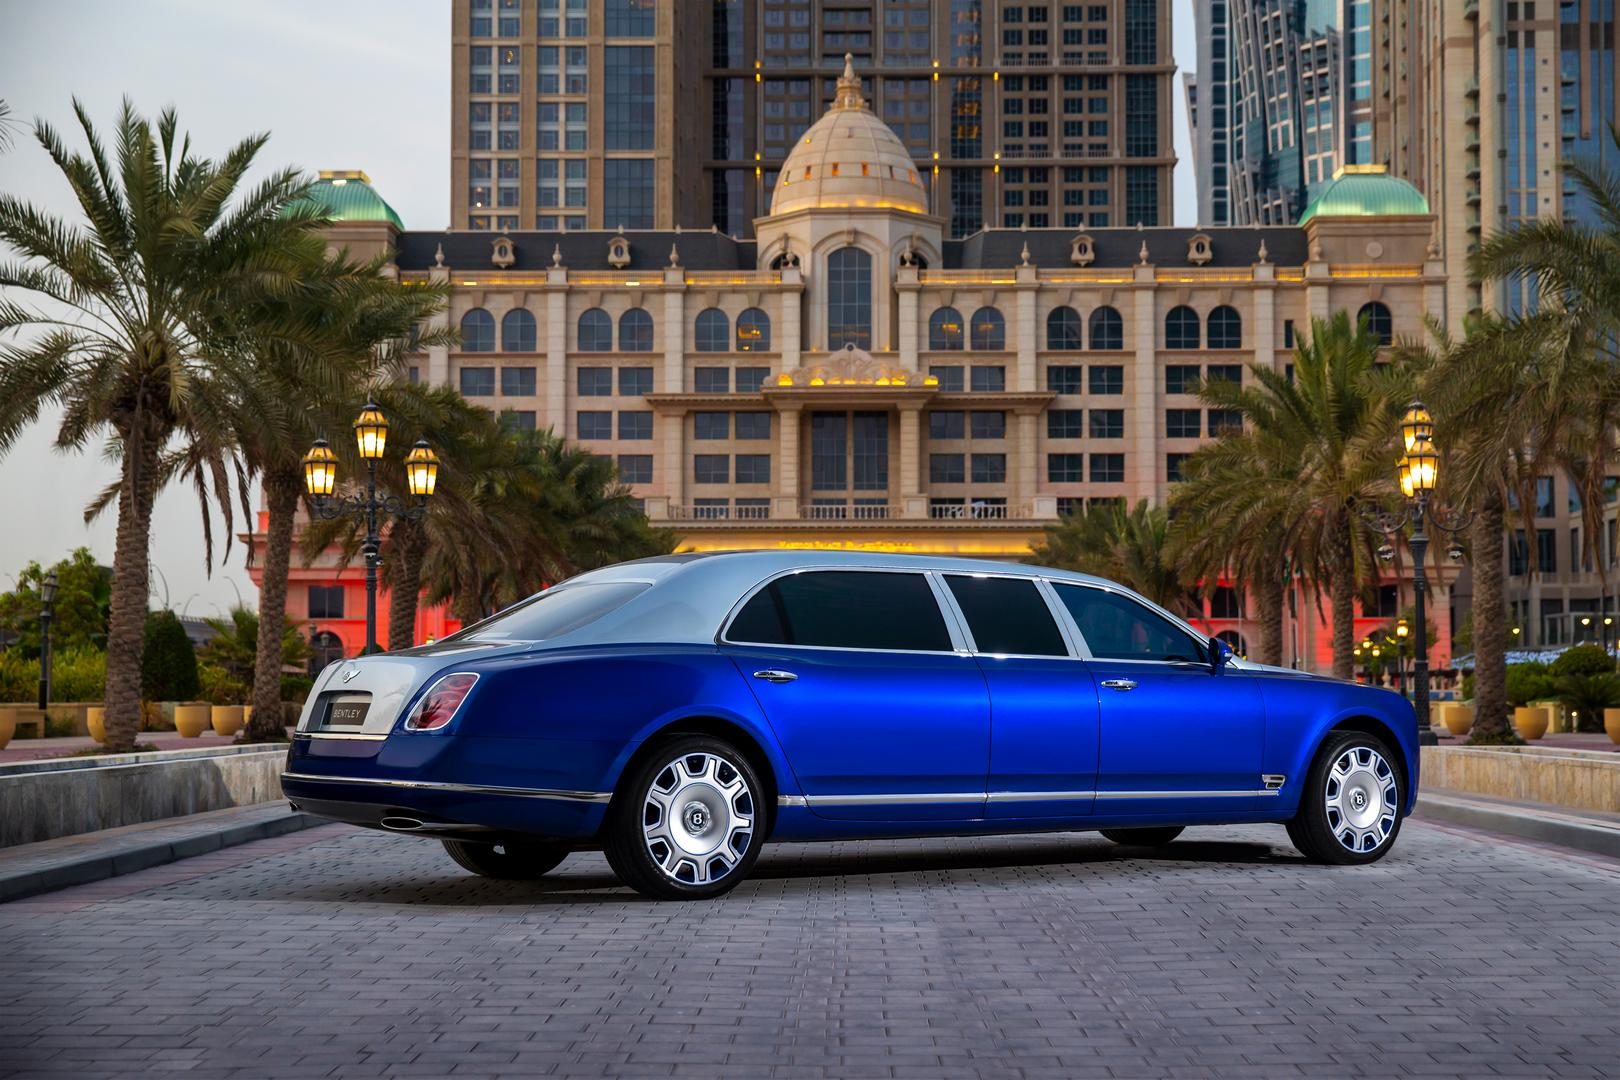 Bentley Mulsanne Grand Limousine by Mulliner for Sale – Only 5 Were Built